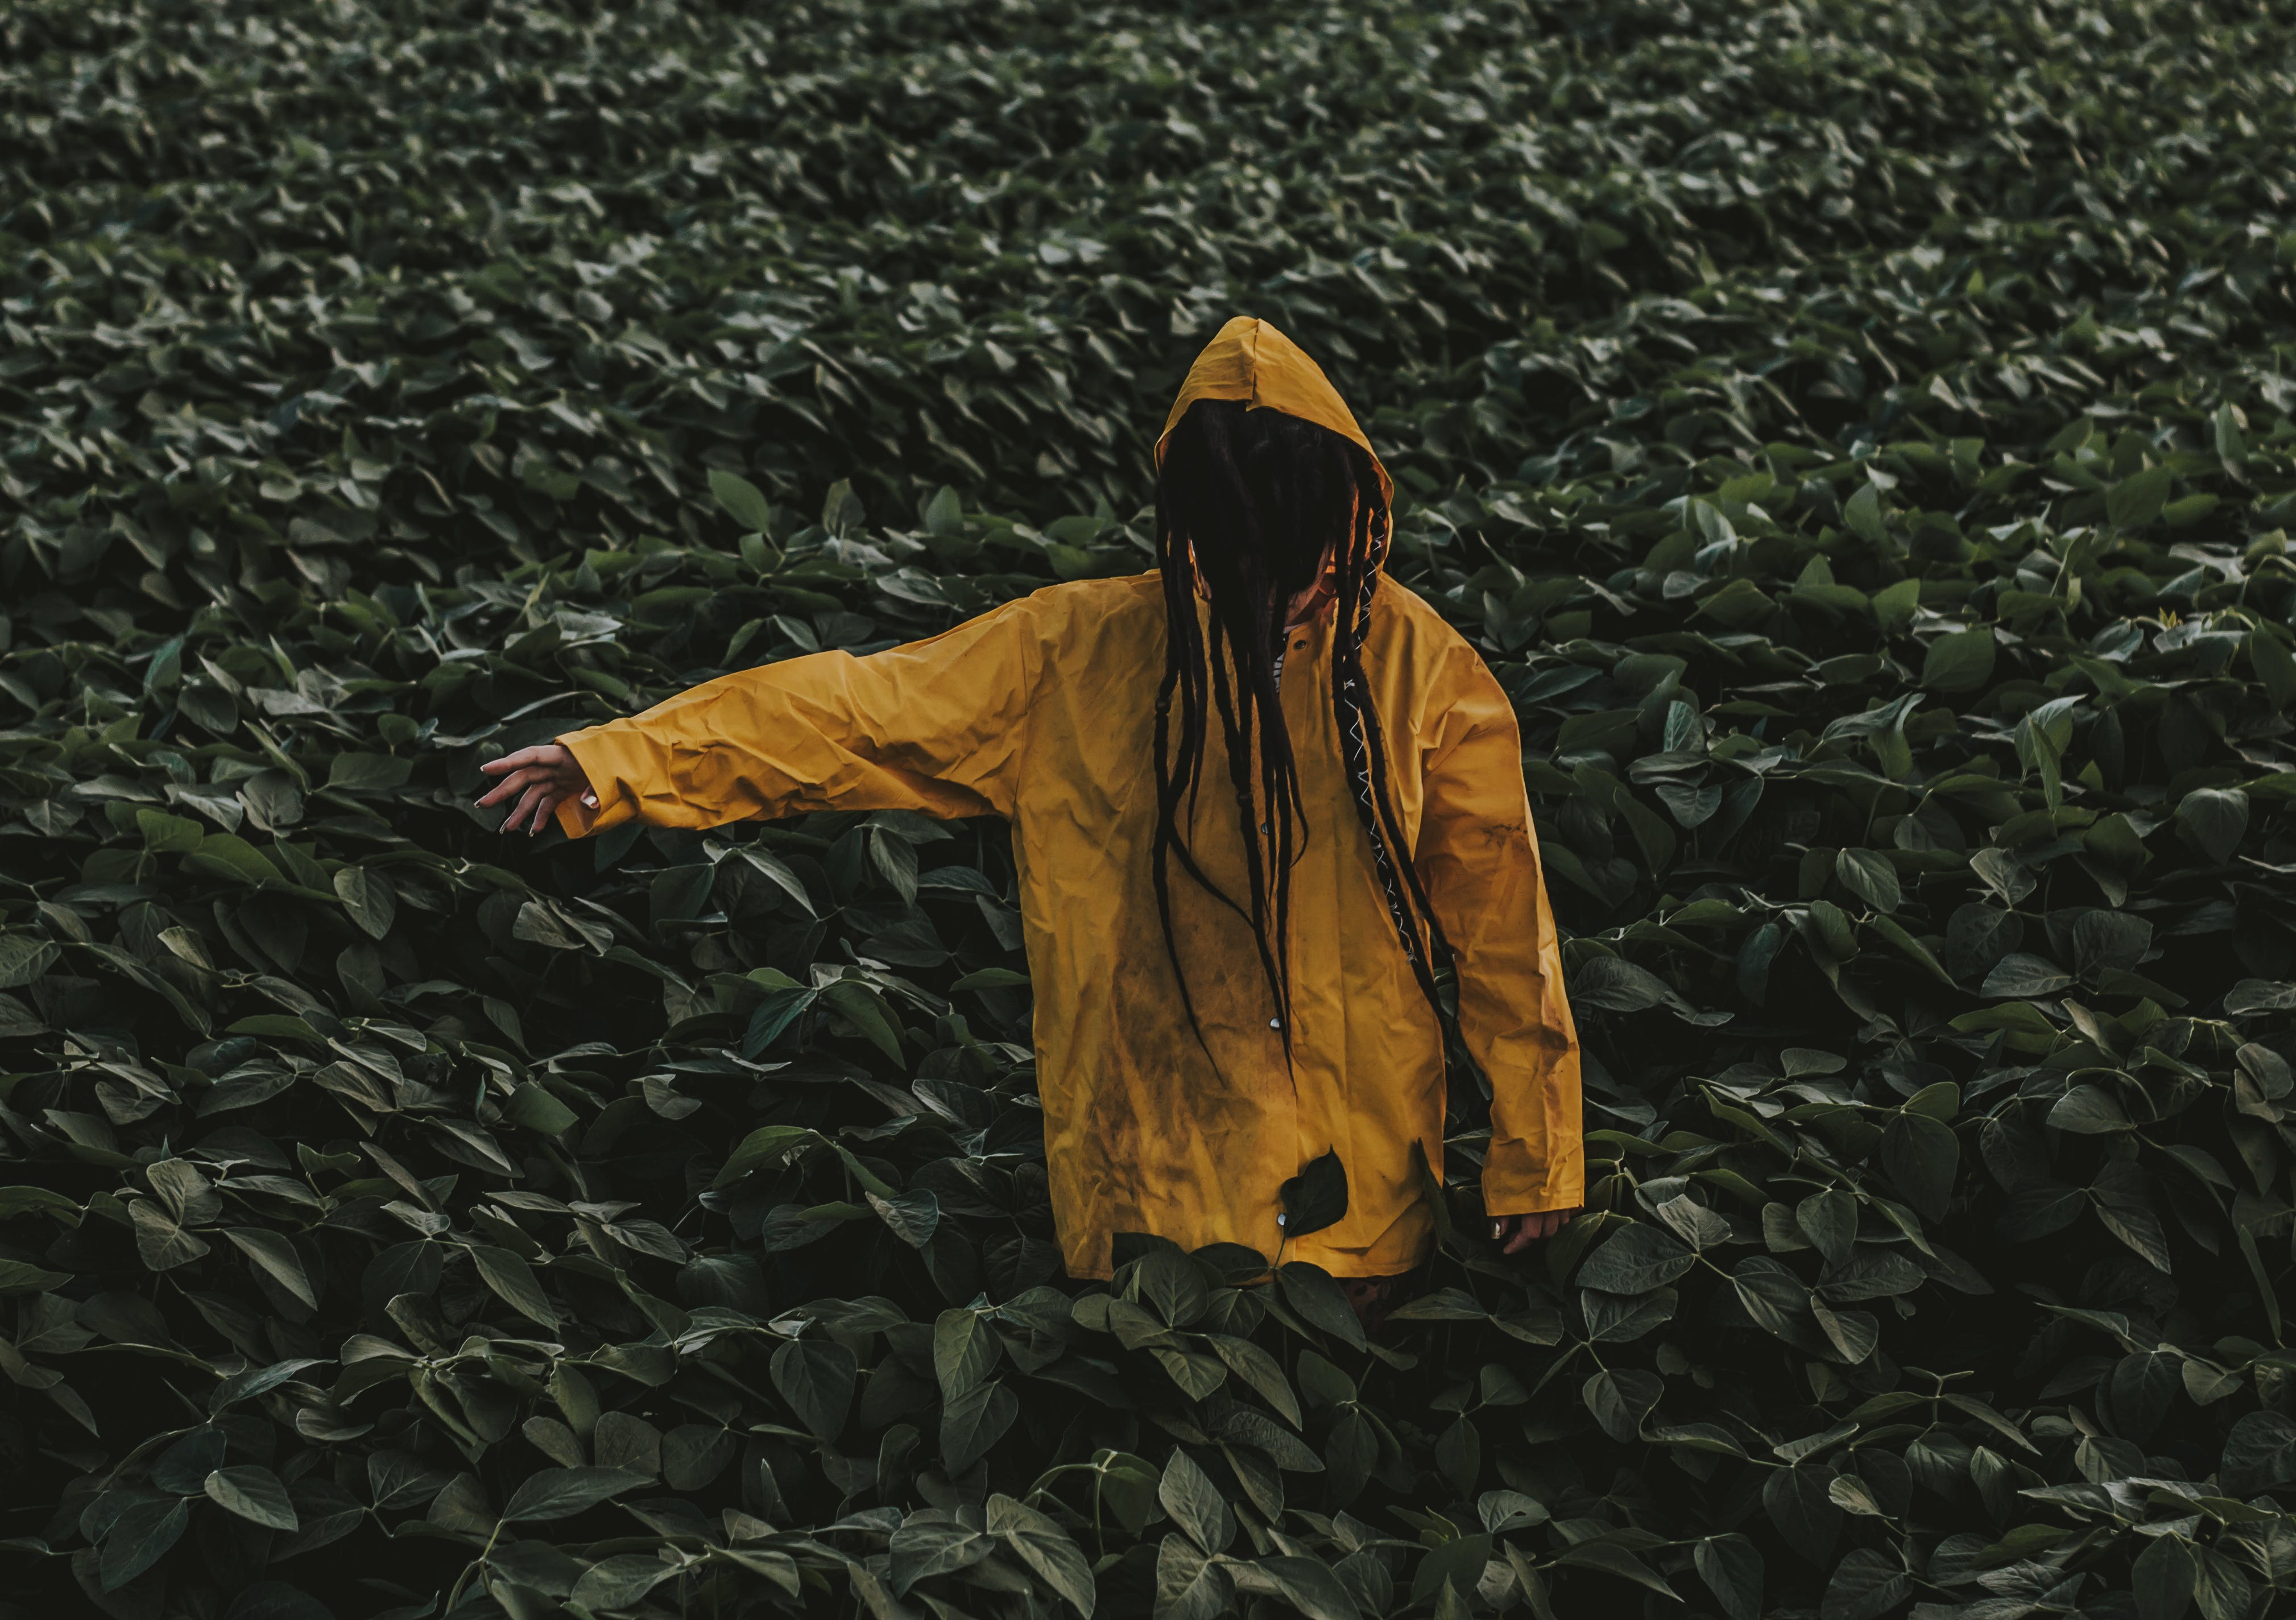 Person Wearing Yellow Raincoat Surrounded by Green Leaf Plants